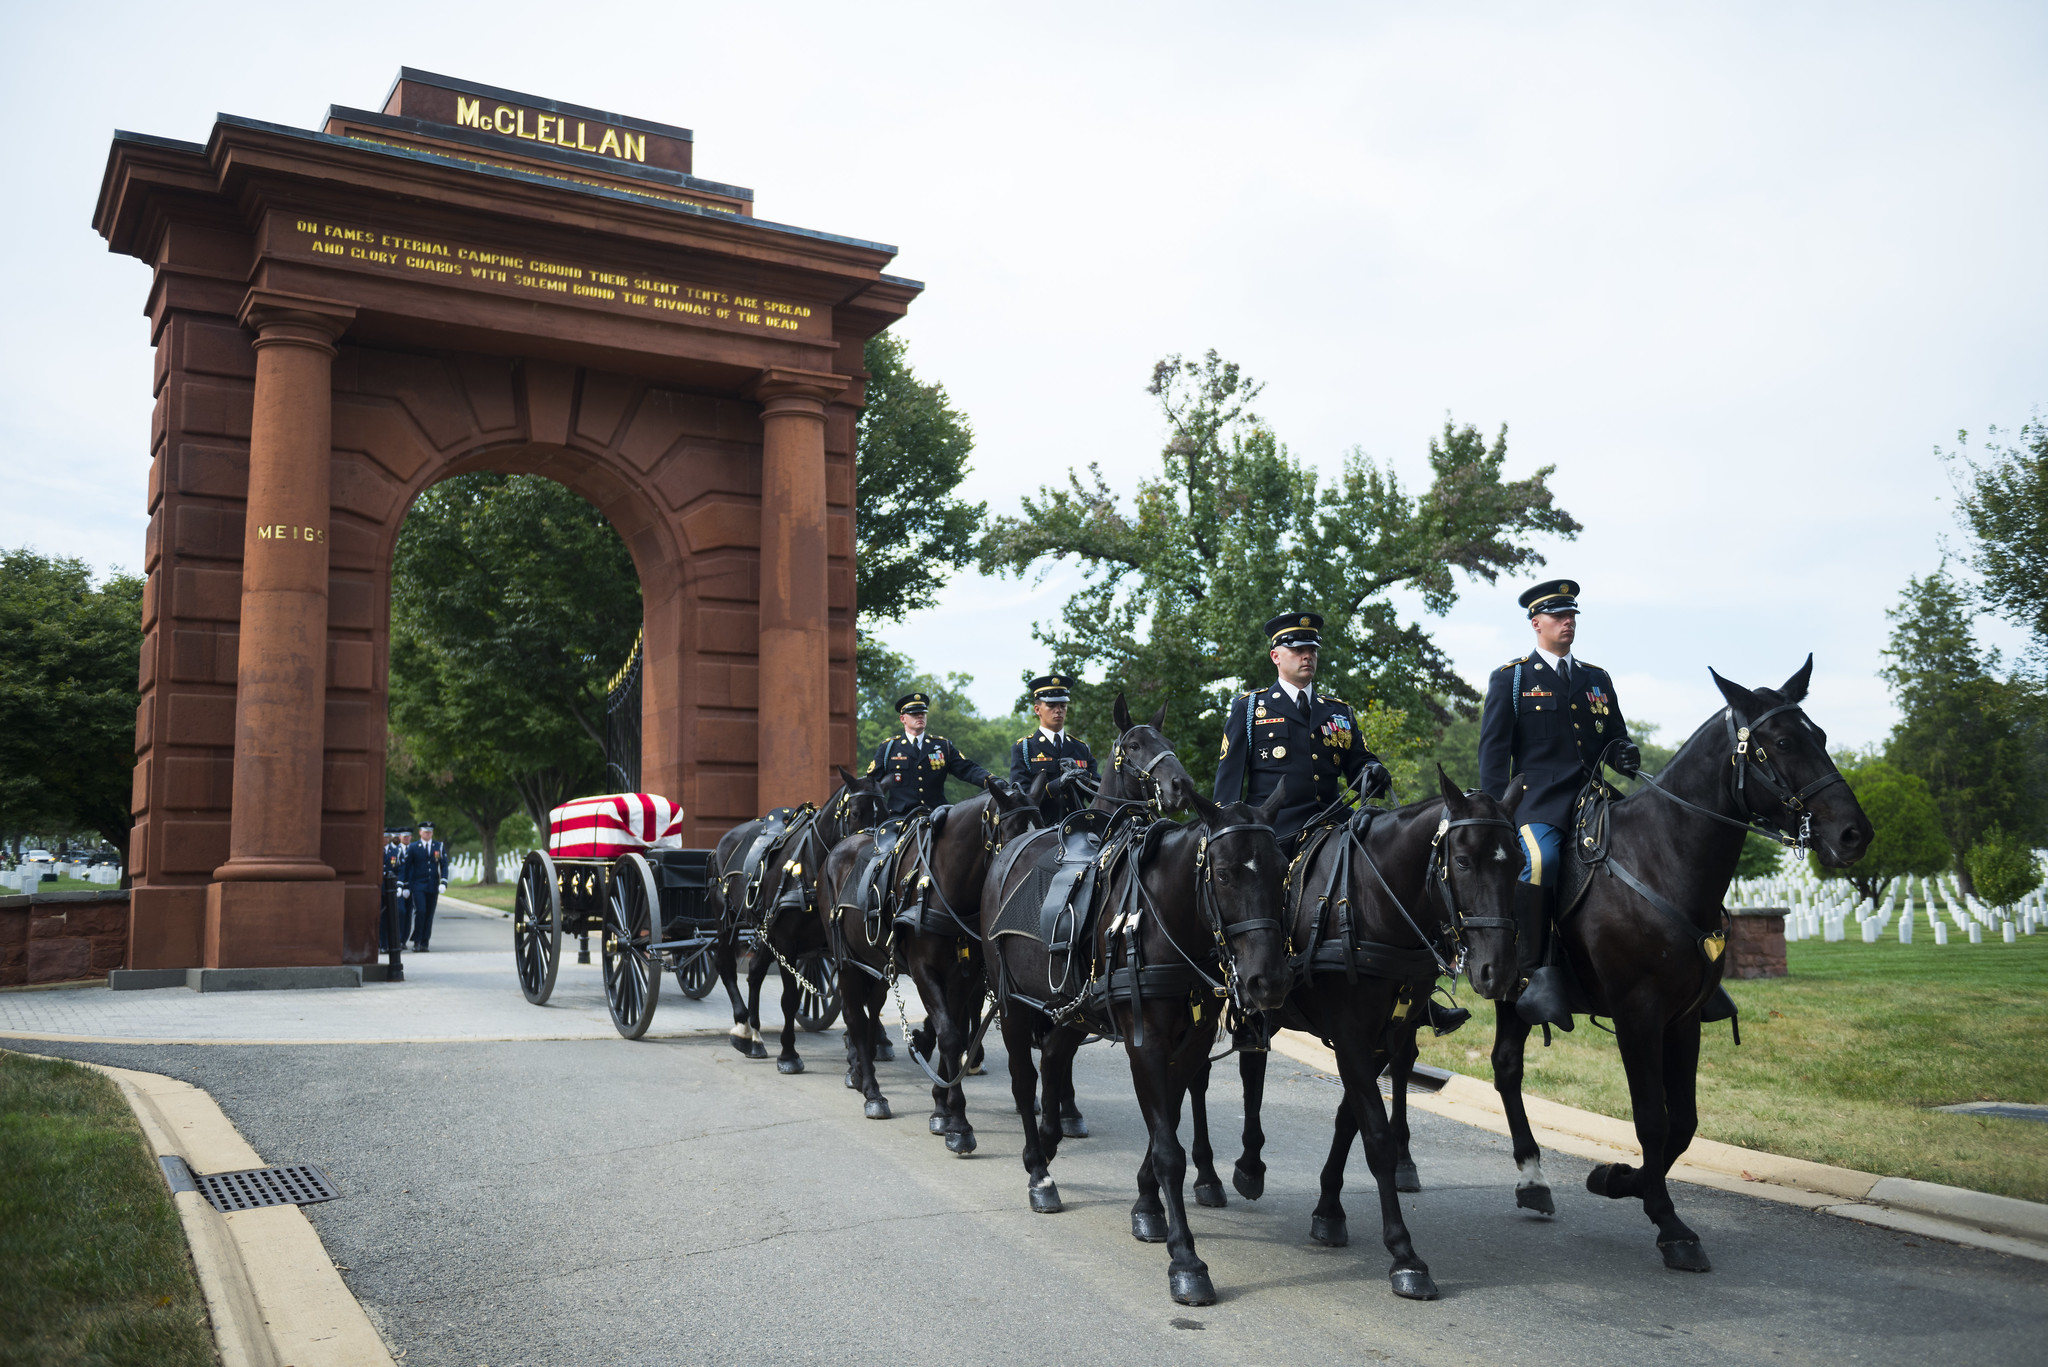 Full Honors Funeral for U.S. Air Force Col. Robert Anderson at Arlington National Cemetery